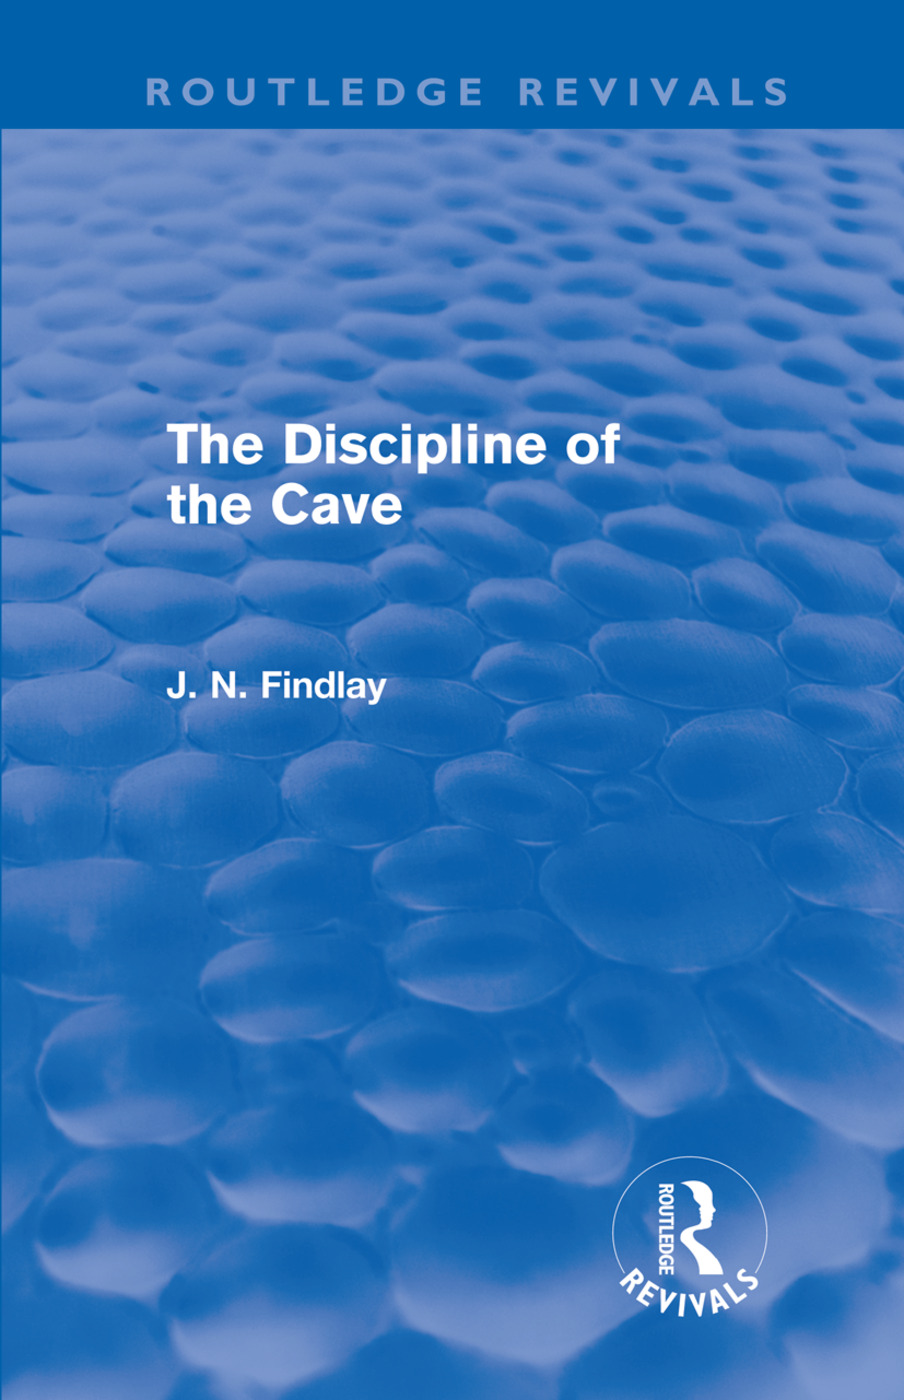 The Discipline of the Cave (Routledge Revivals) (Hardback) book cover